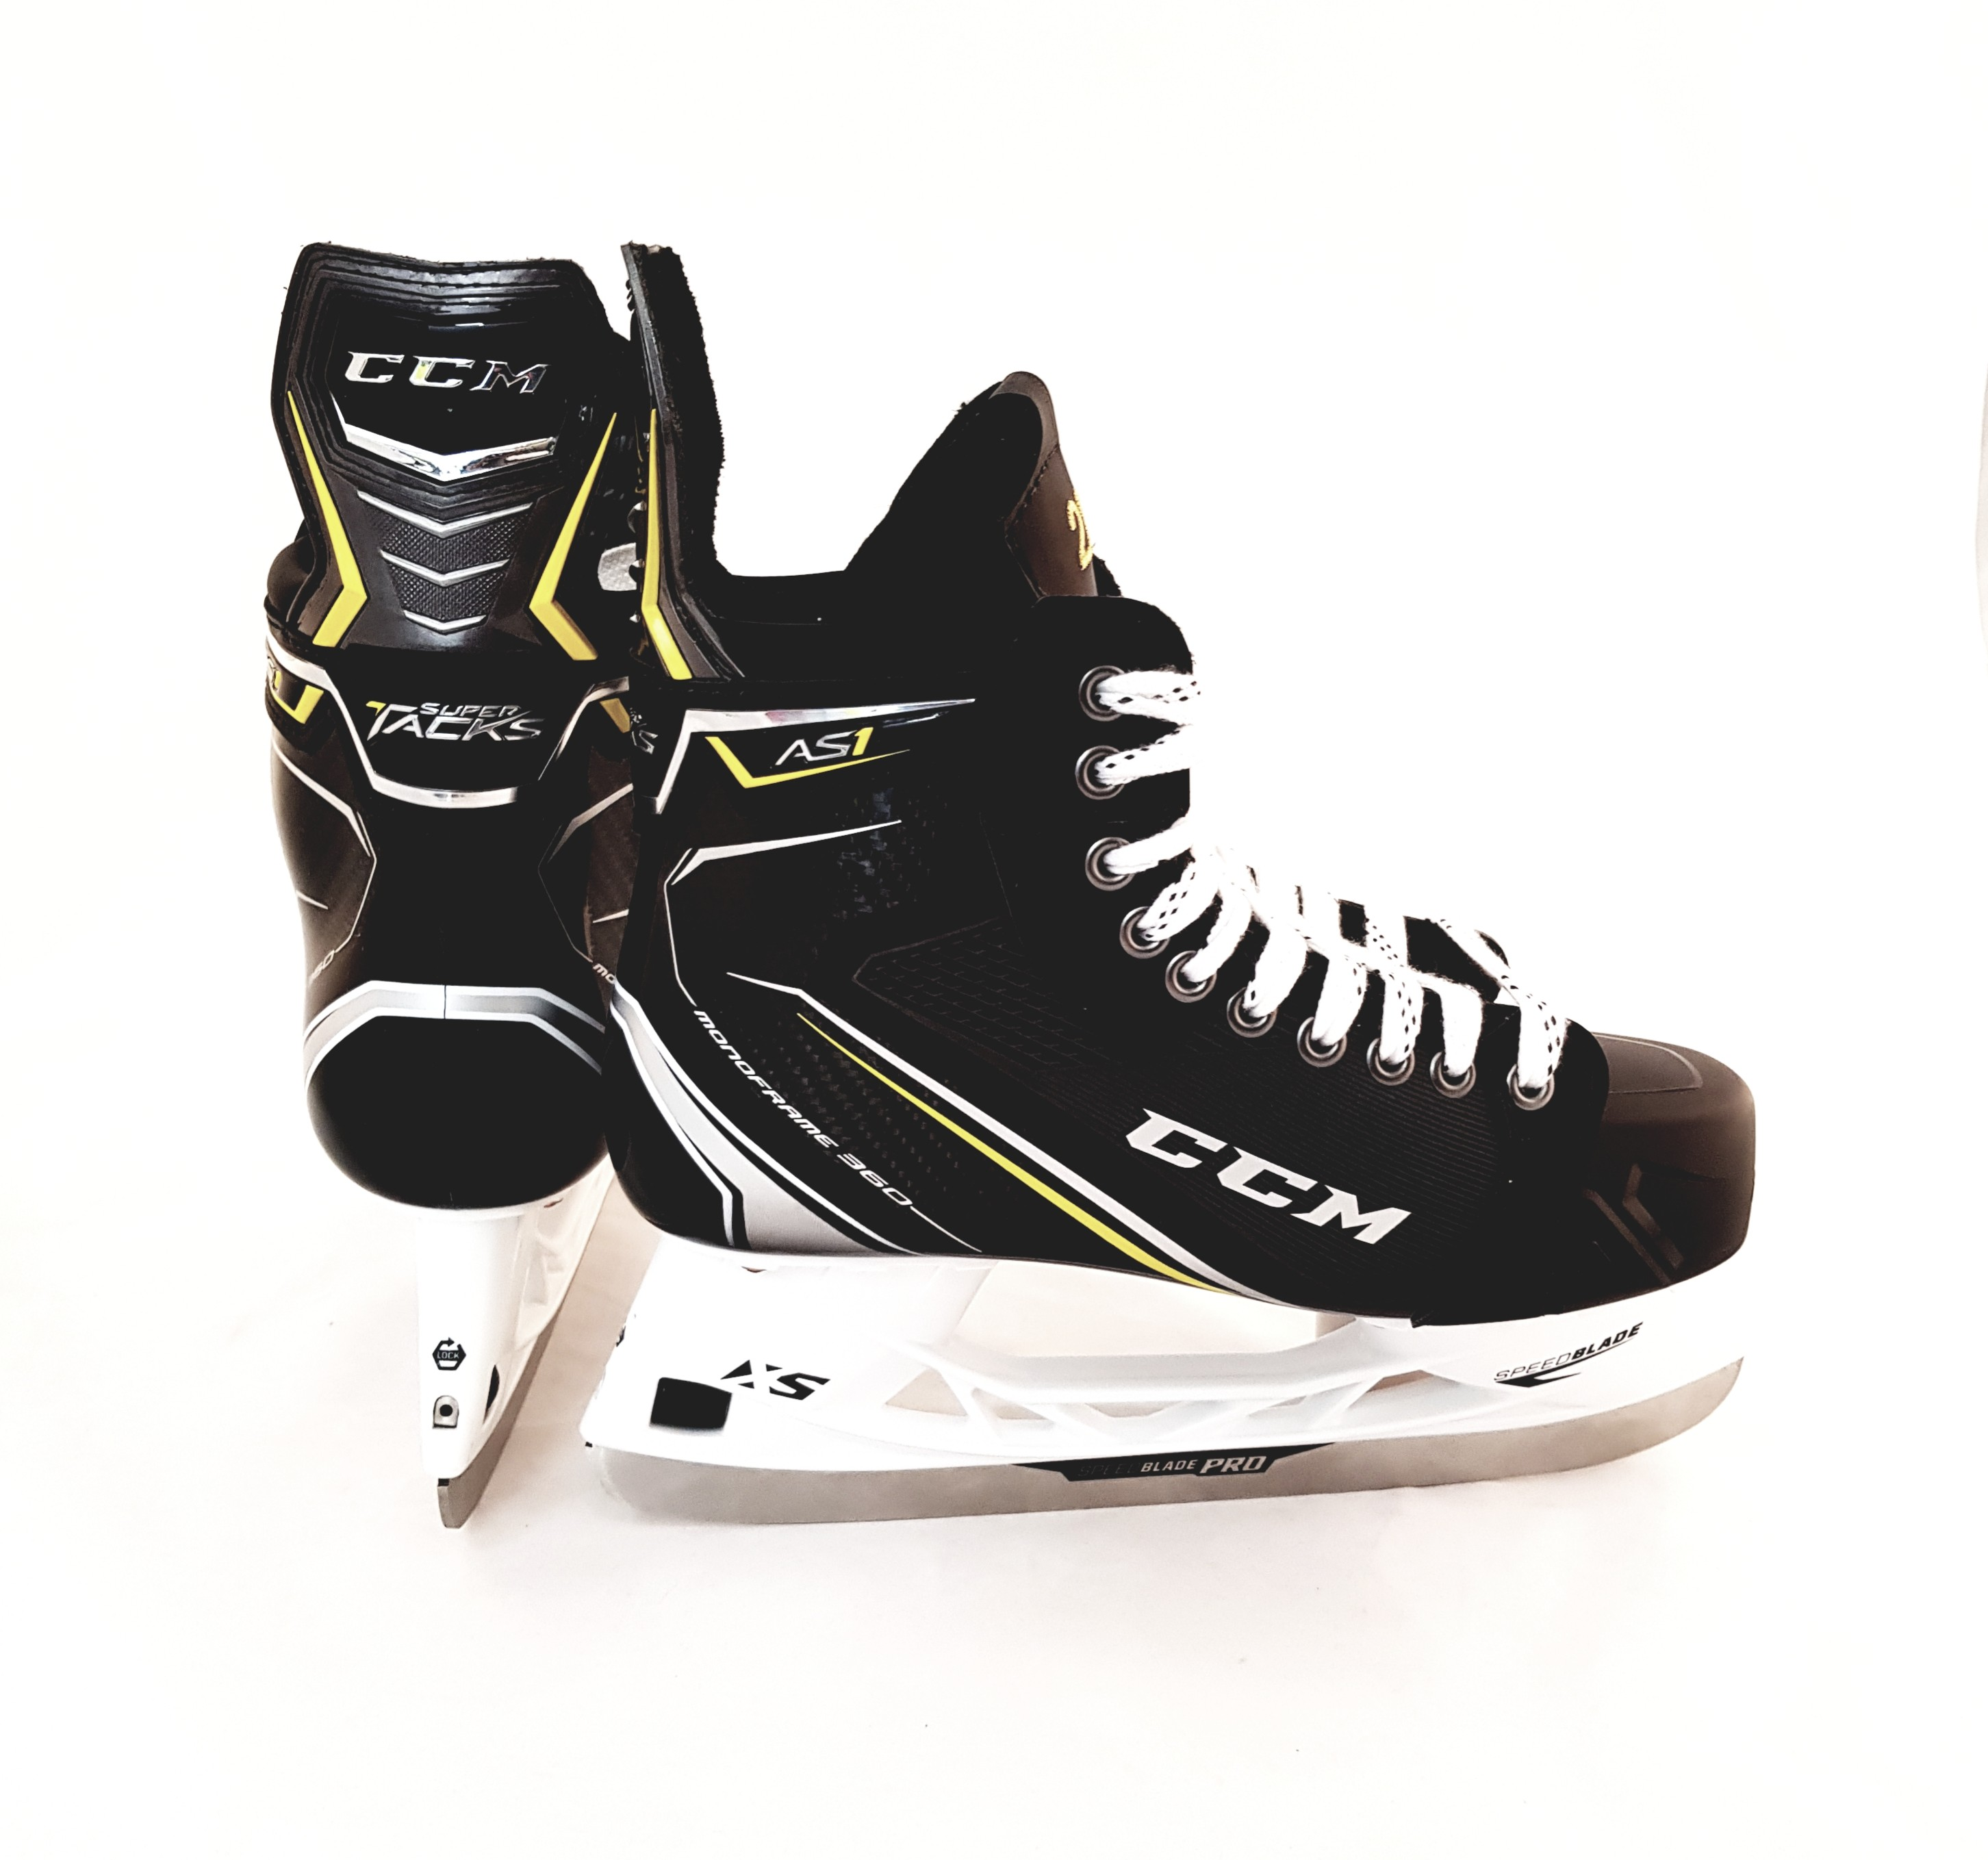 CCM Super Tacks AS1 PRO STOCK Senior Ice Hockey Skates